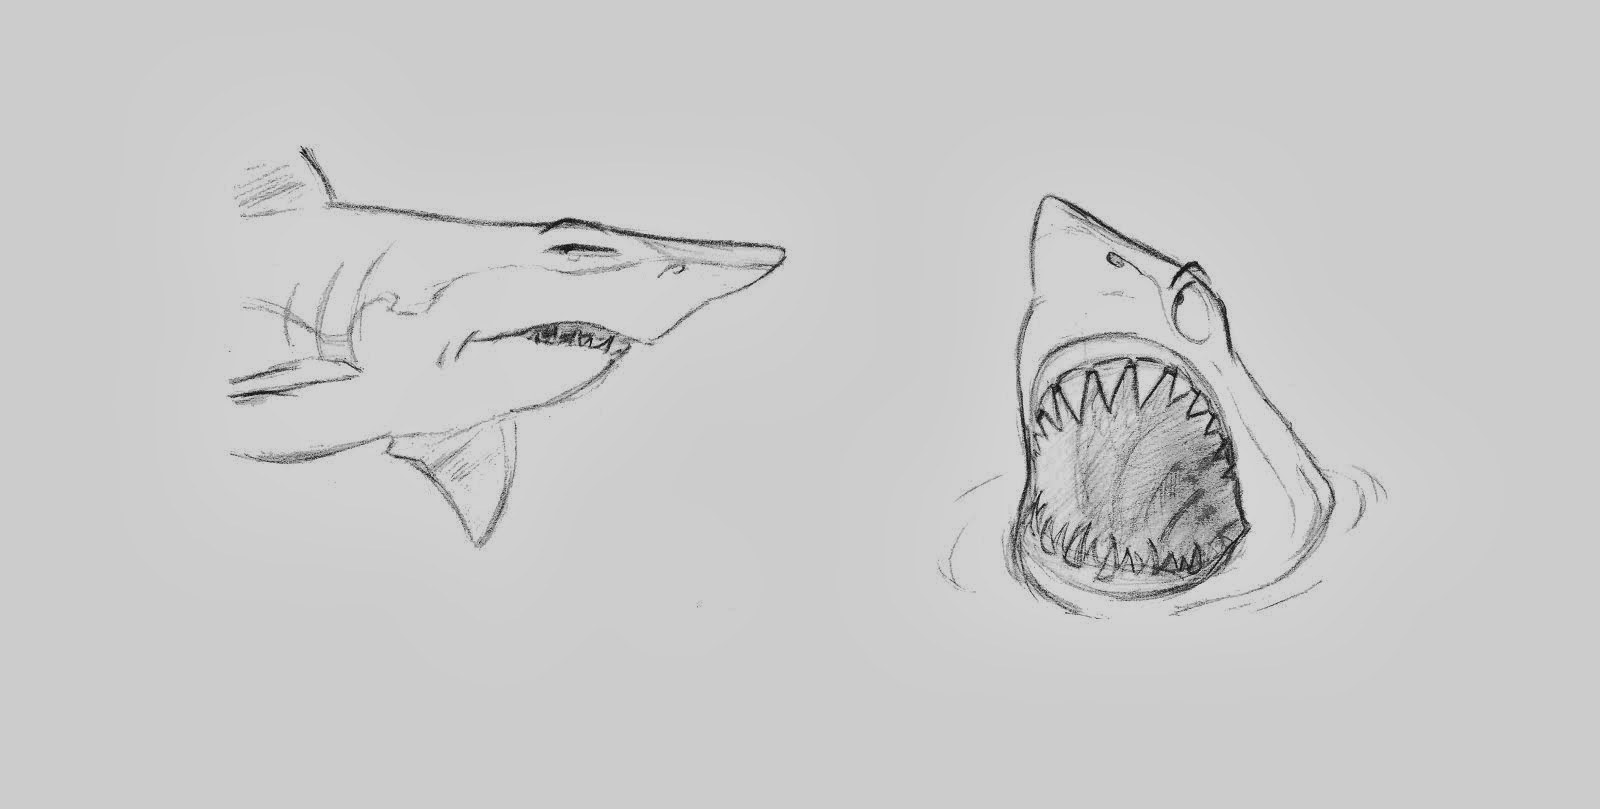 Shark sketch design, 2012